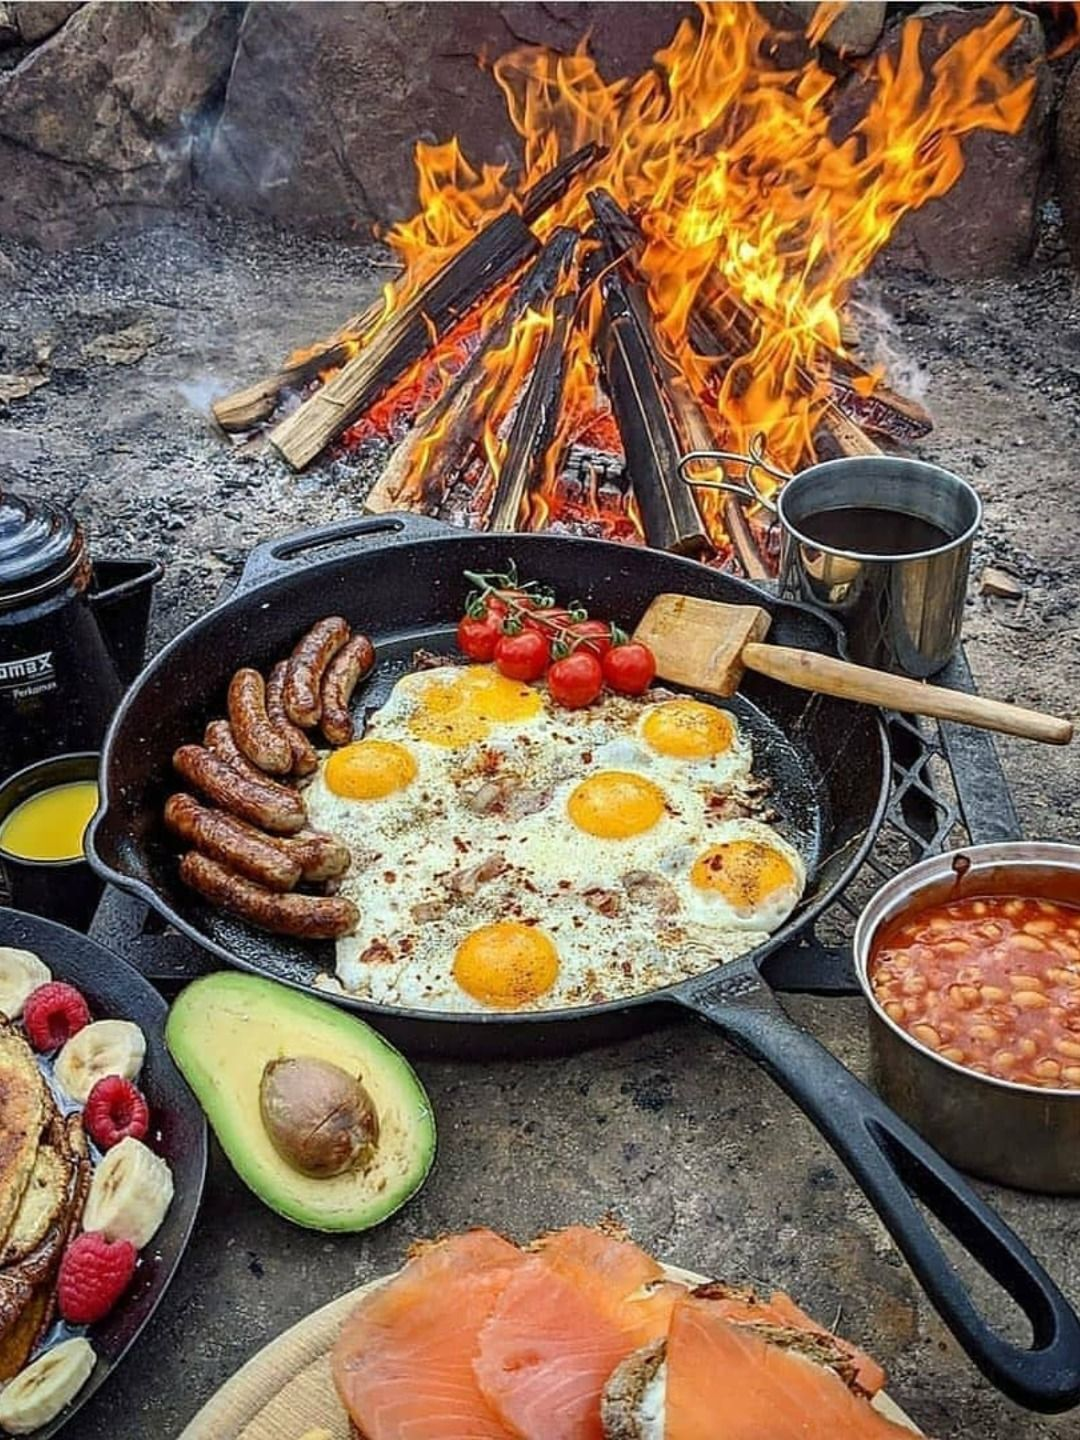 40+ Camping & Backpacking Foods That Don't Need Refrigeration